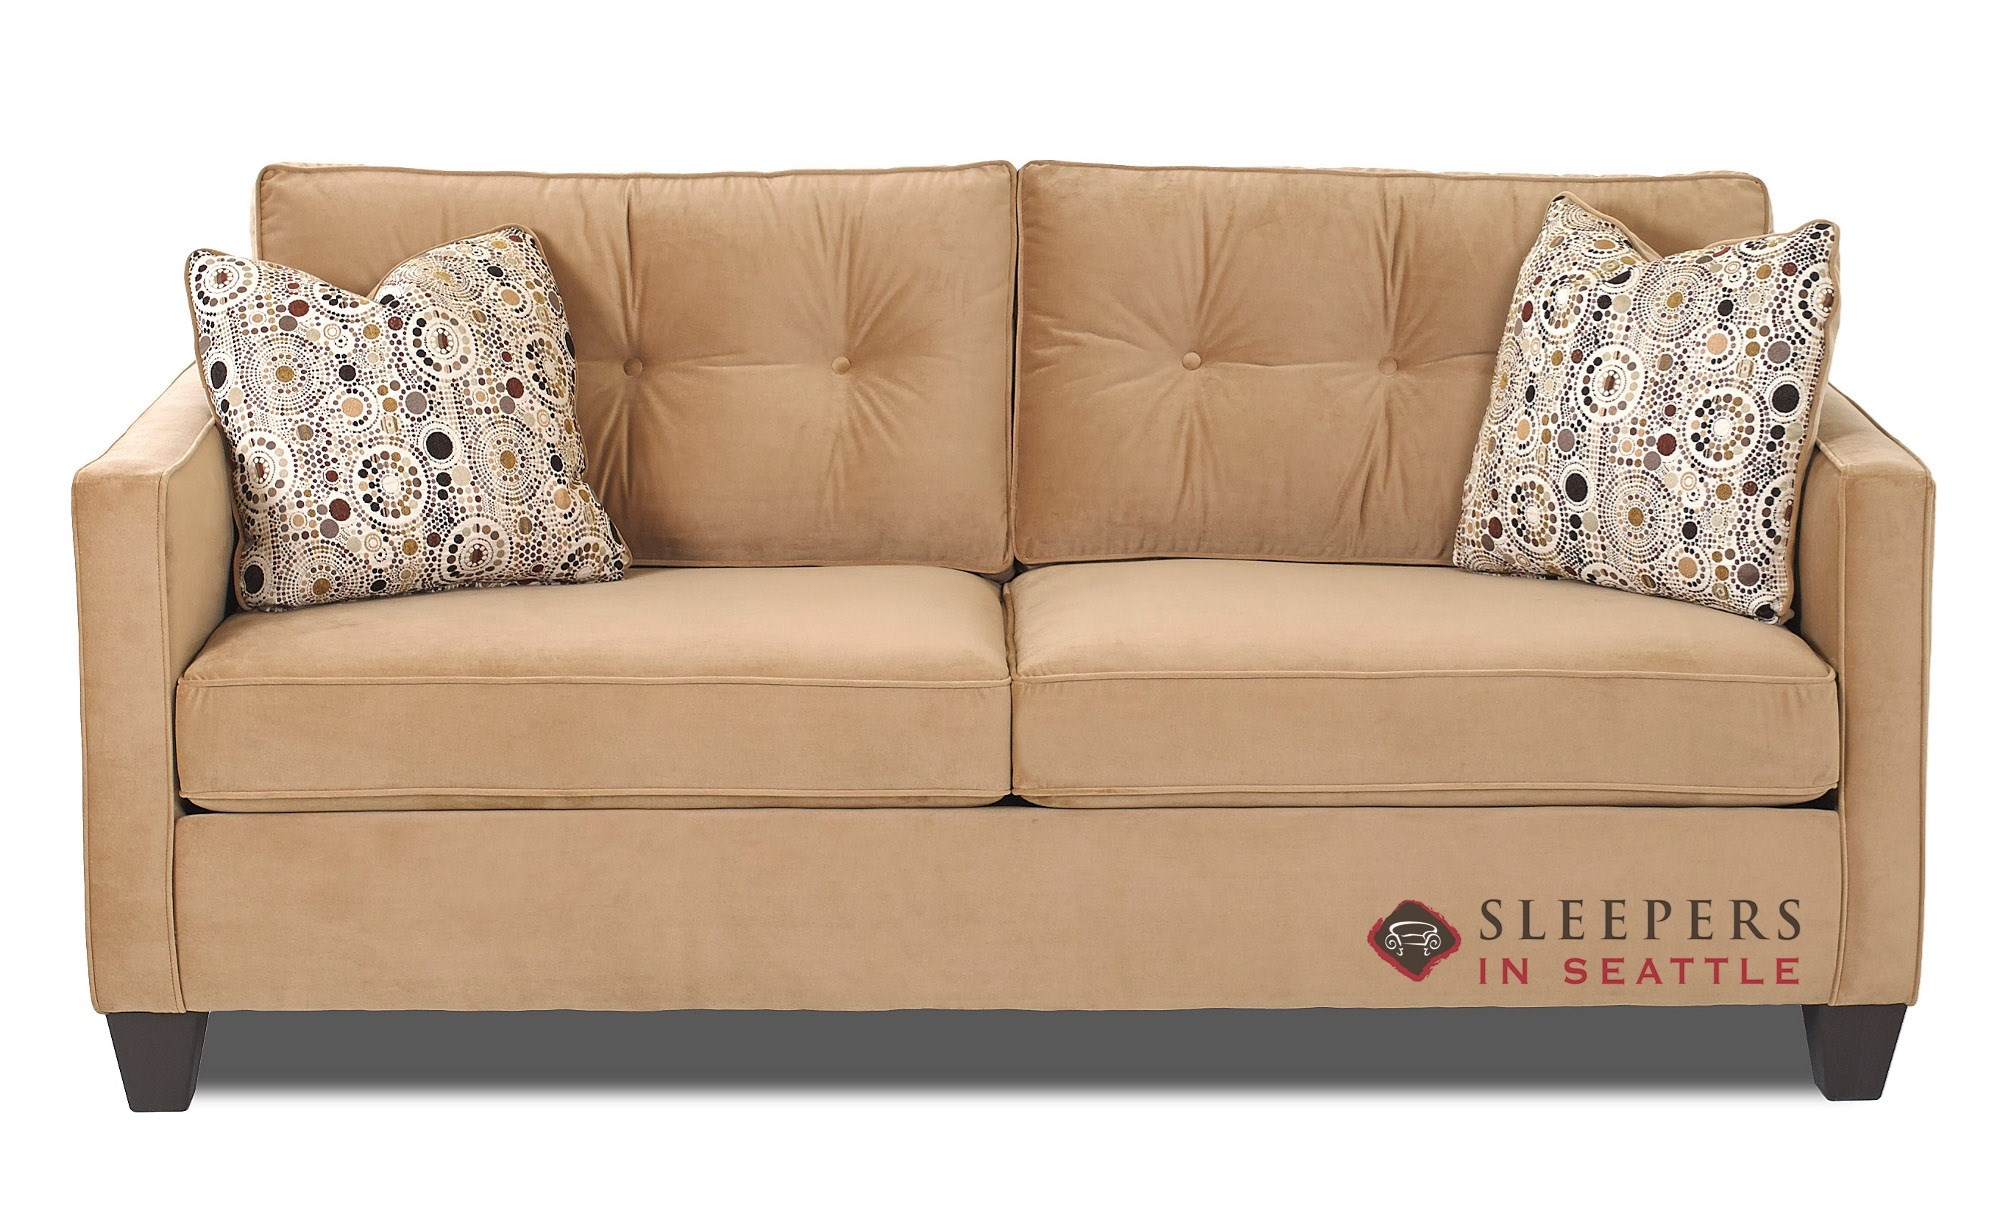 Sleeper Sofa Quick Delivery Quick Ship Bristol Queen Fabric Sofa By Savvy Fast Shipping Bristol Queen Sofa Bed Sleepersinseattle